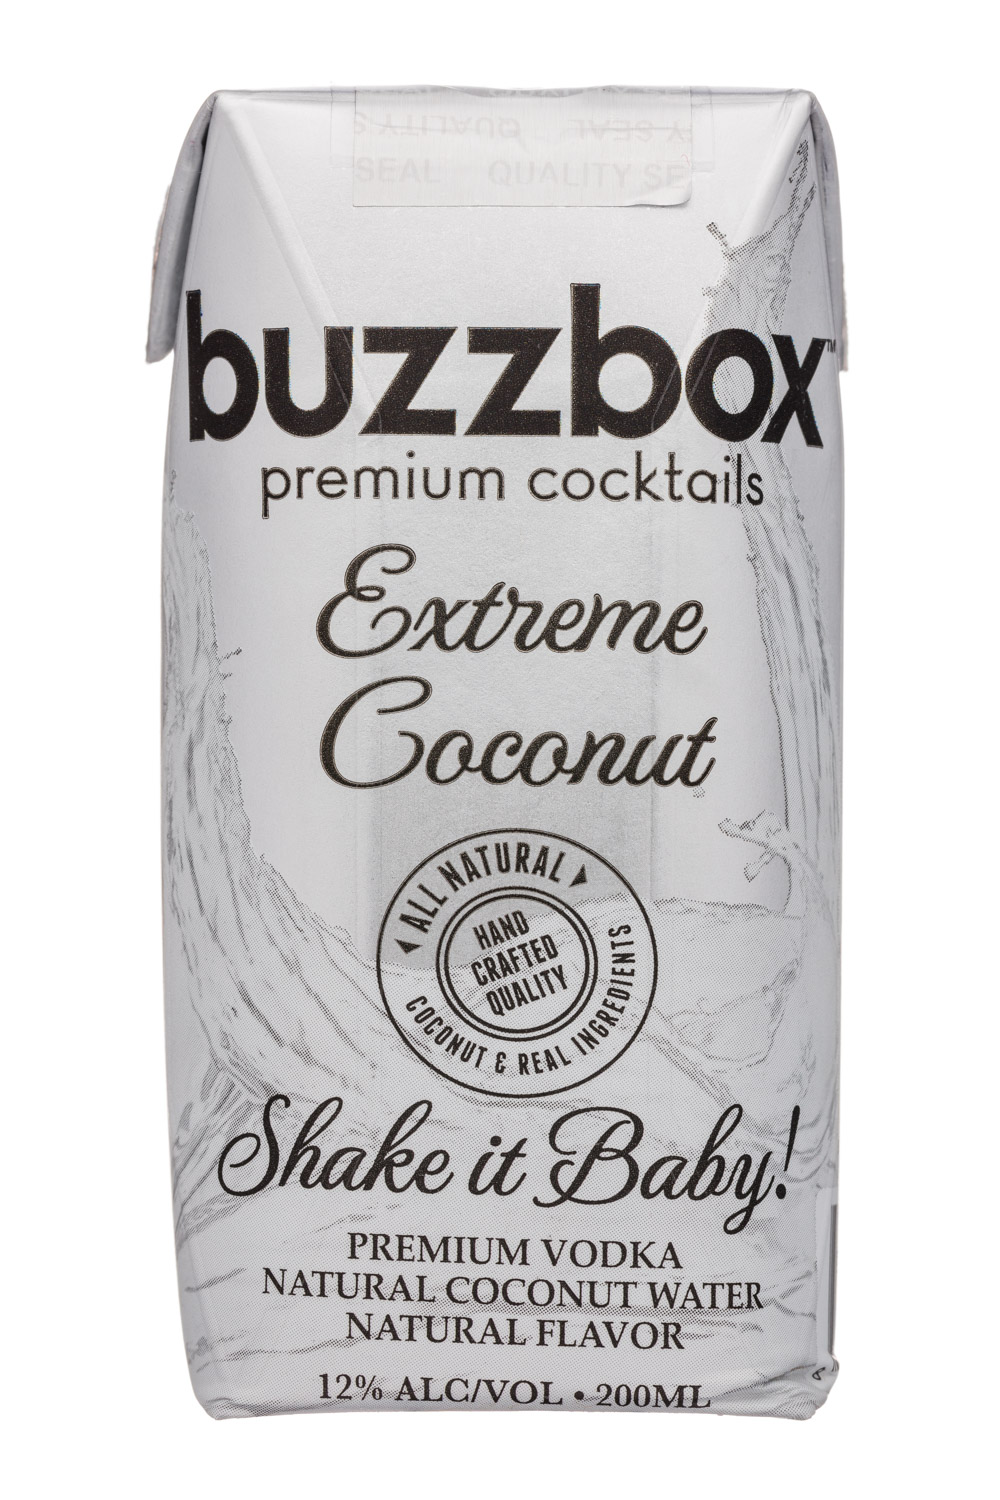 BuzzBox: Buzzbox-200ml-Cocktail-ExtremeCoconut